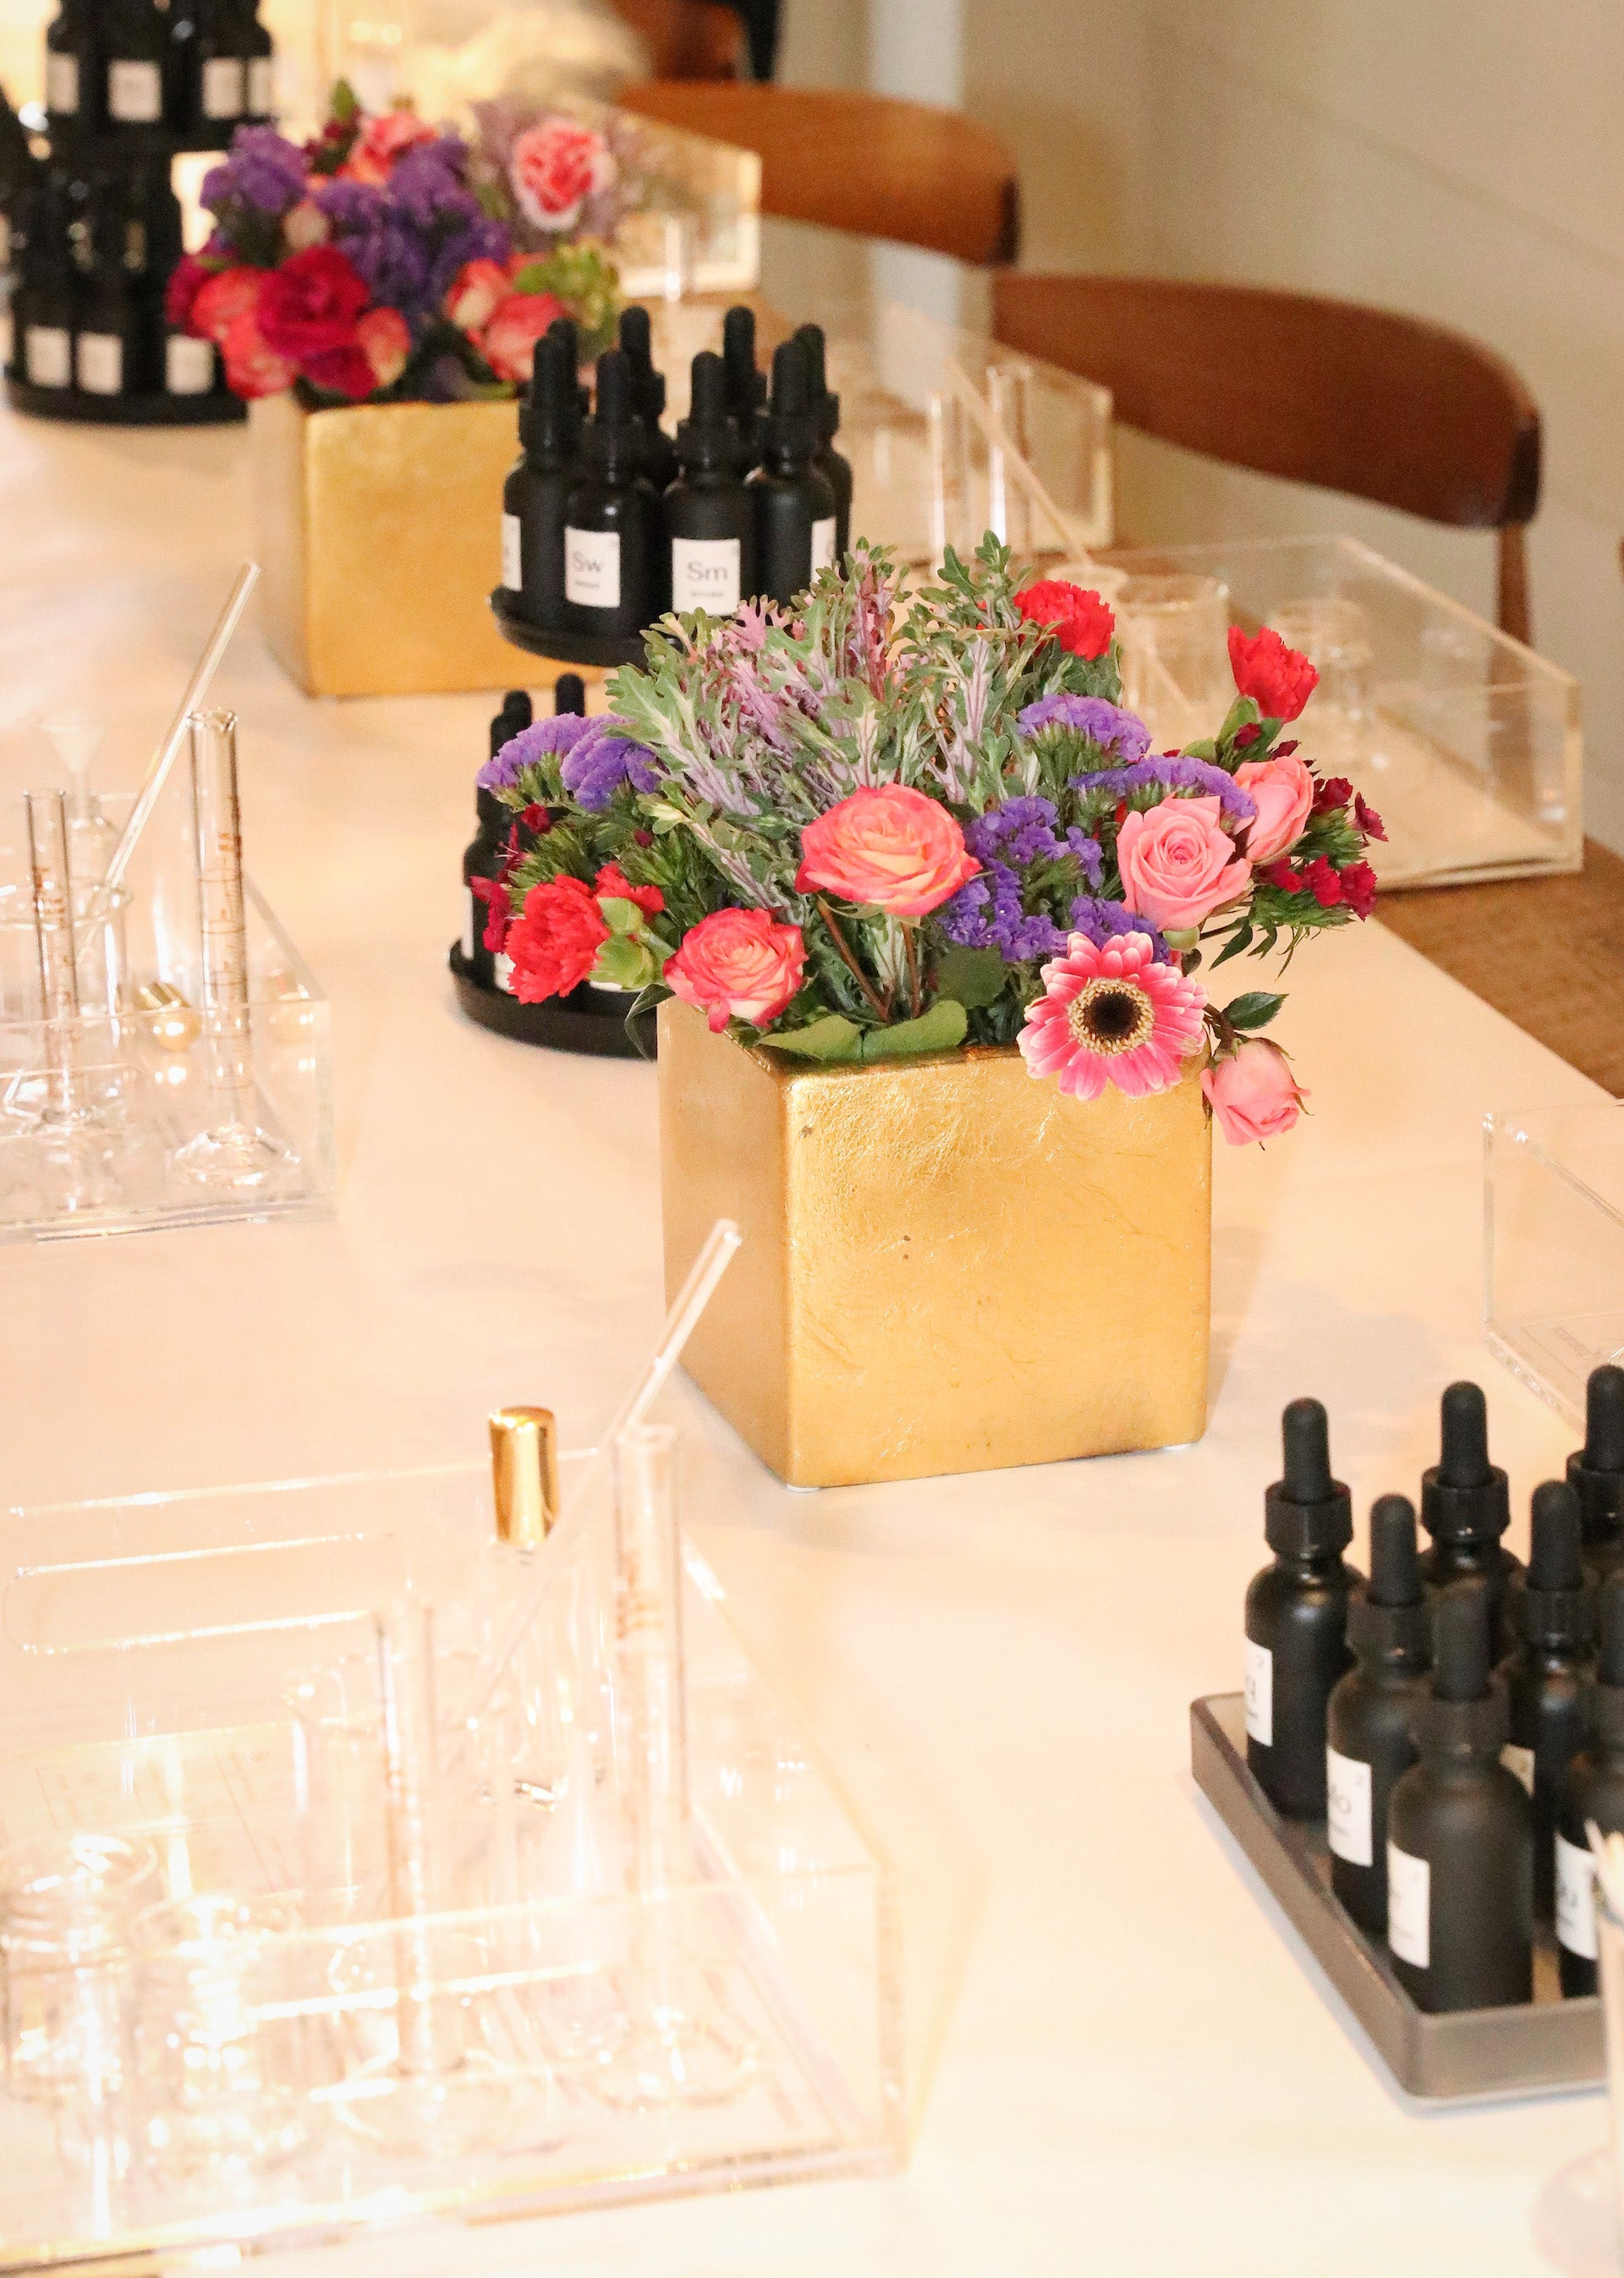 Scent Blending 101 - Private Birthday Event!